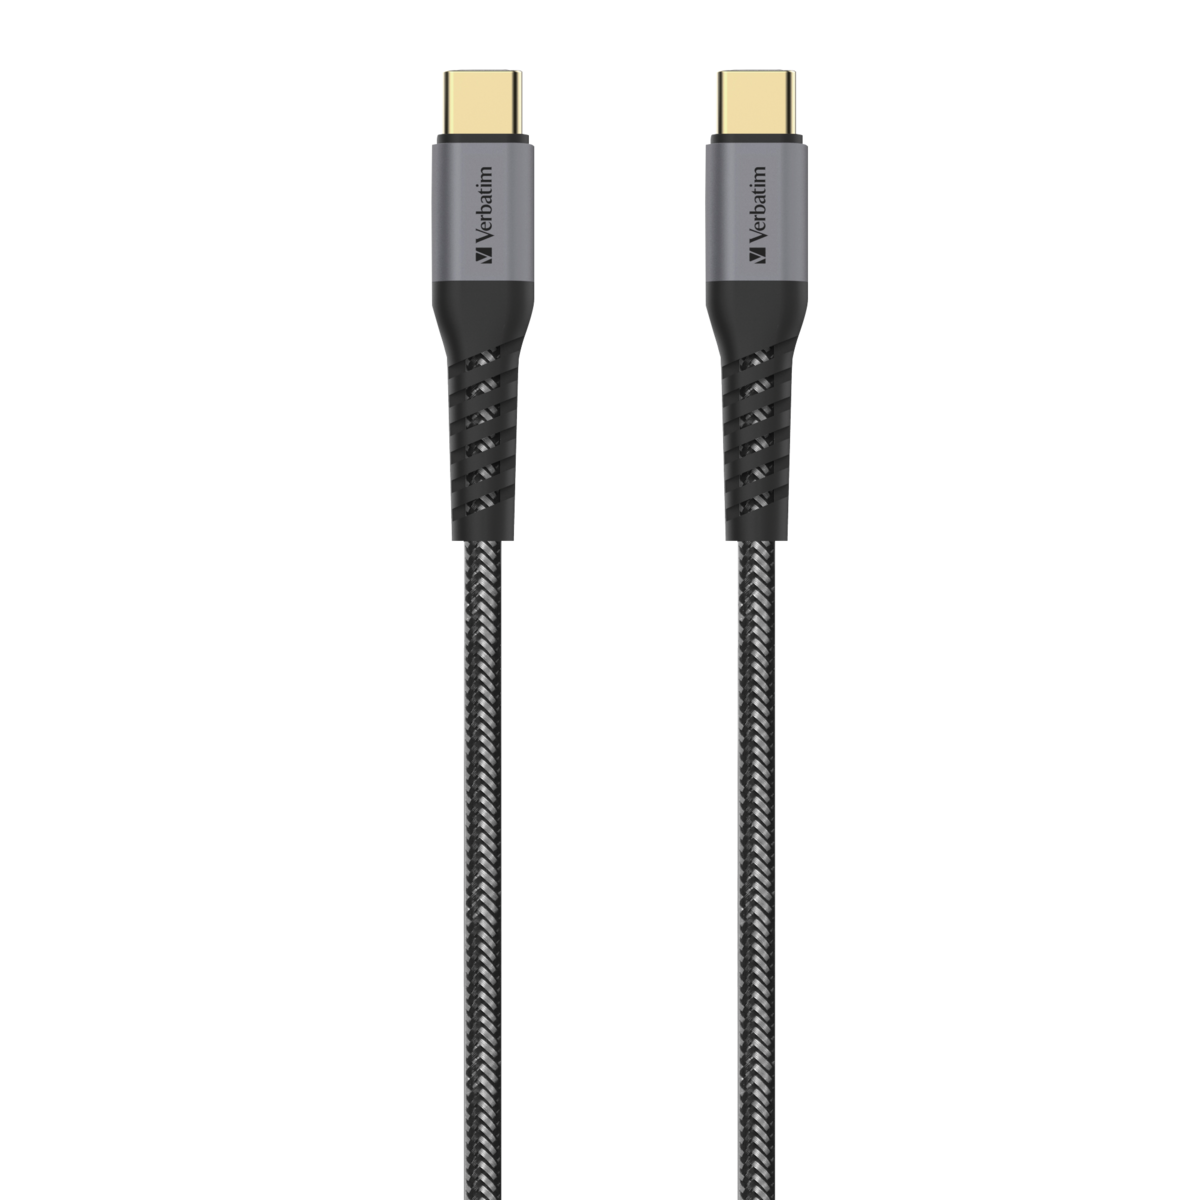 Sync & Charge Tough Max Type C to Type C 100W PD Cable 2m